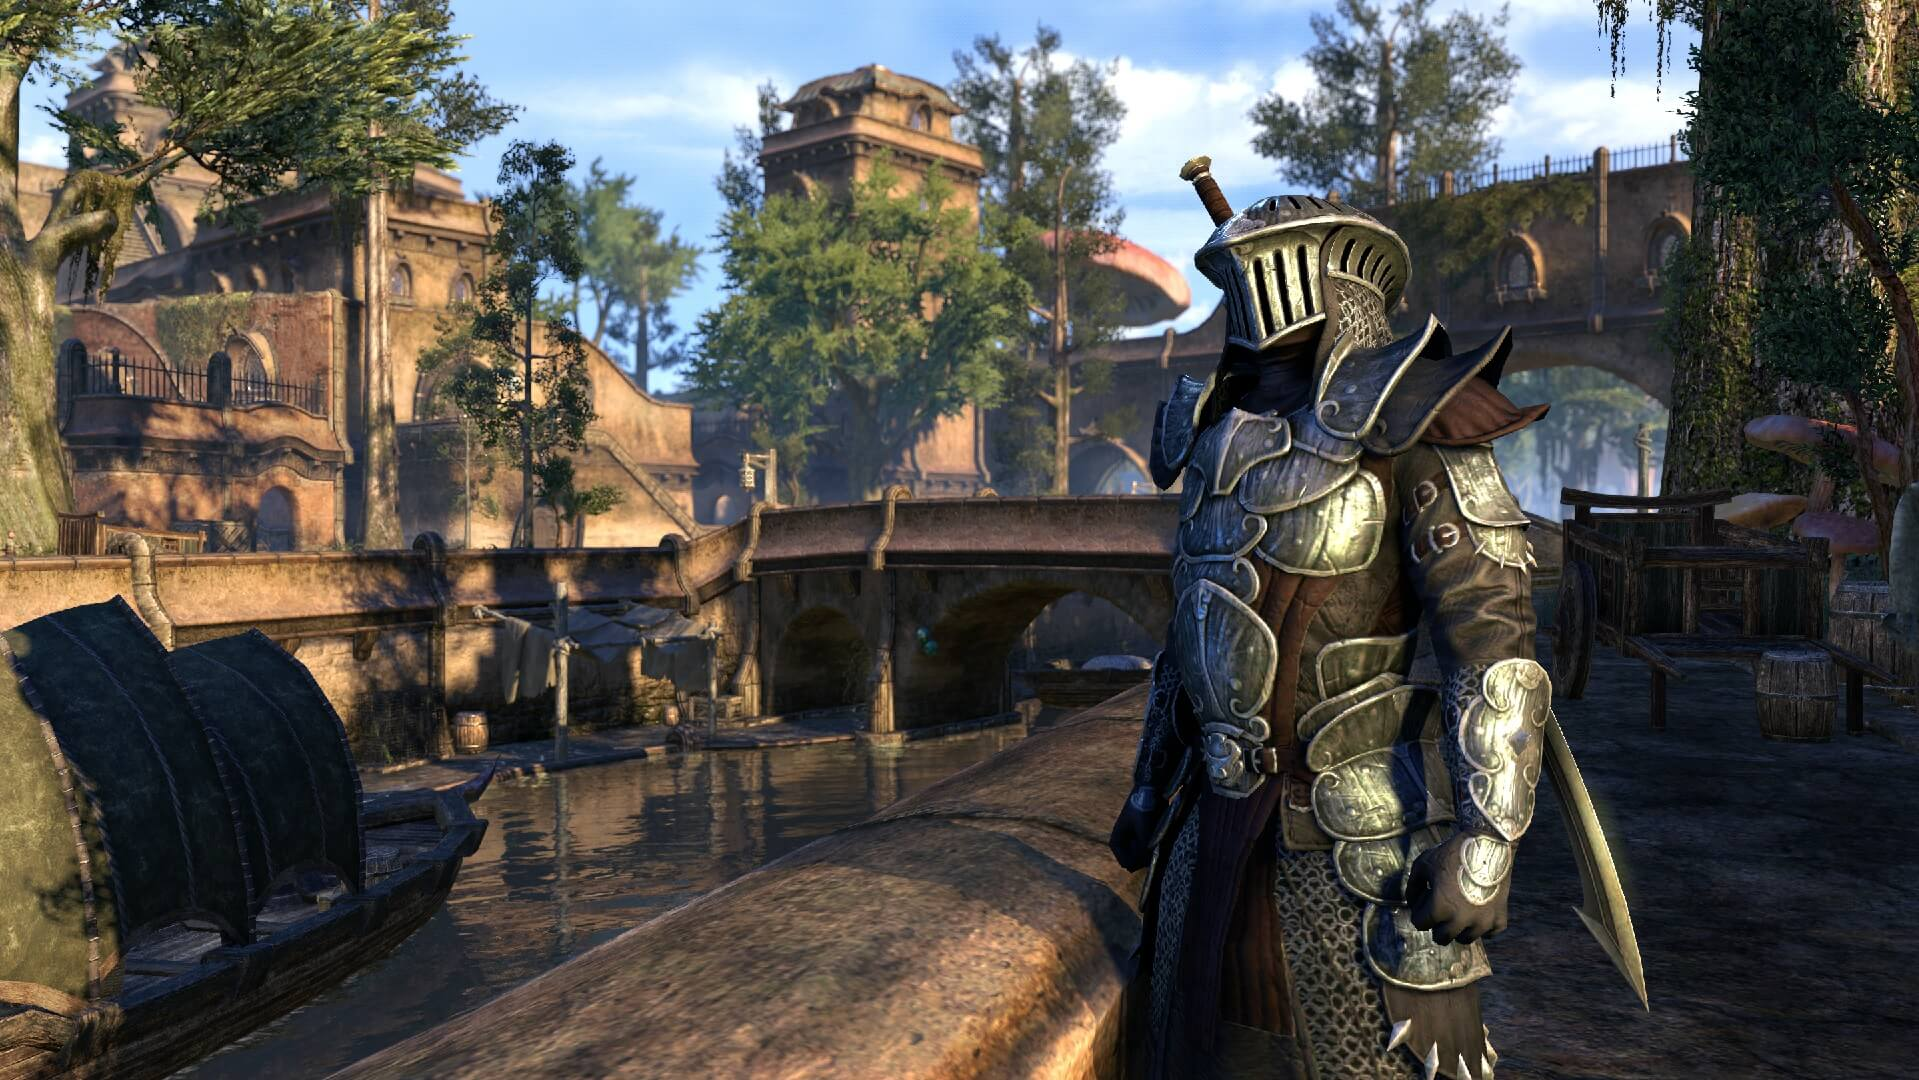 Morrowind wallpapers, Video Game, HQ Morrowind pictures | 4K